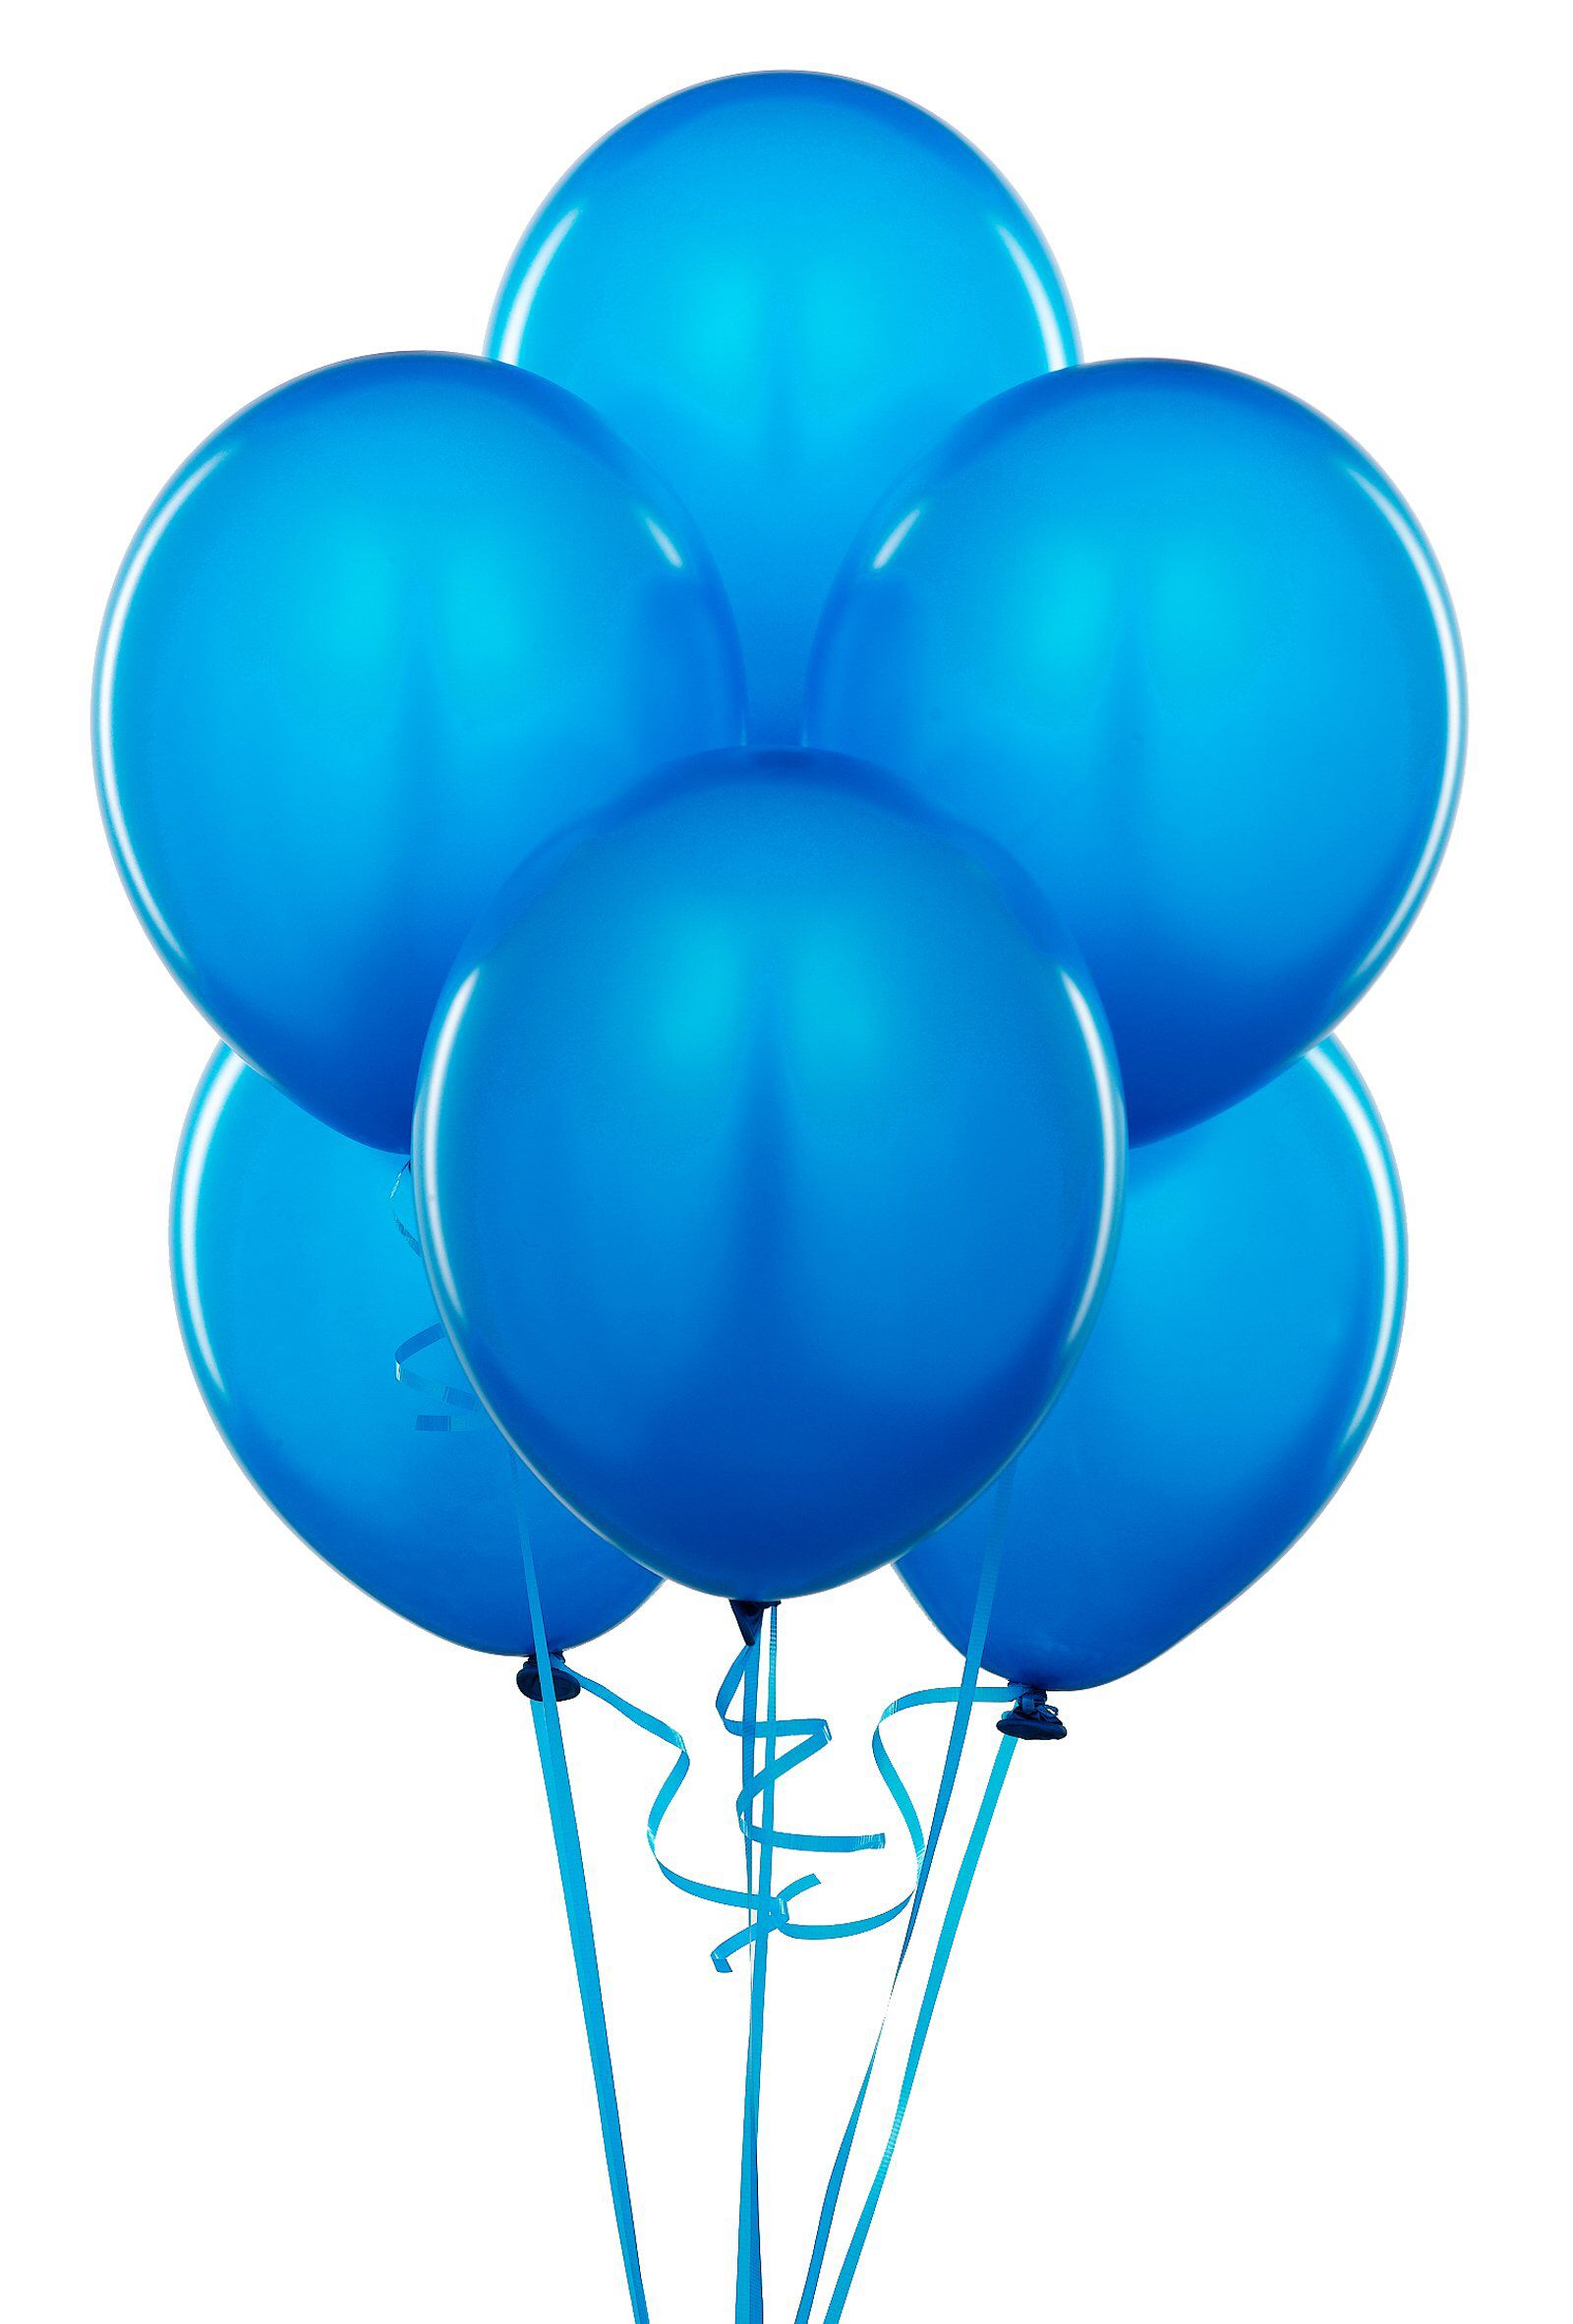 Image From Http Www Cliparthut Com Clip Arts 217 Blue Balloons Clip Art 217500 Jpeg Blue Balloons Balloons Birthday Balloons Clipart